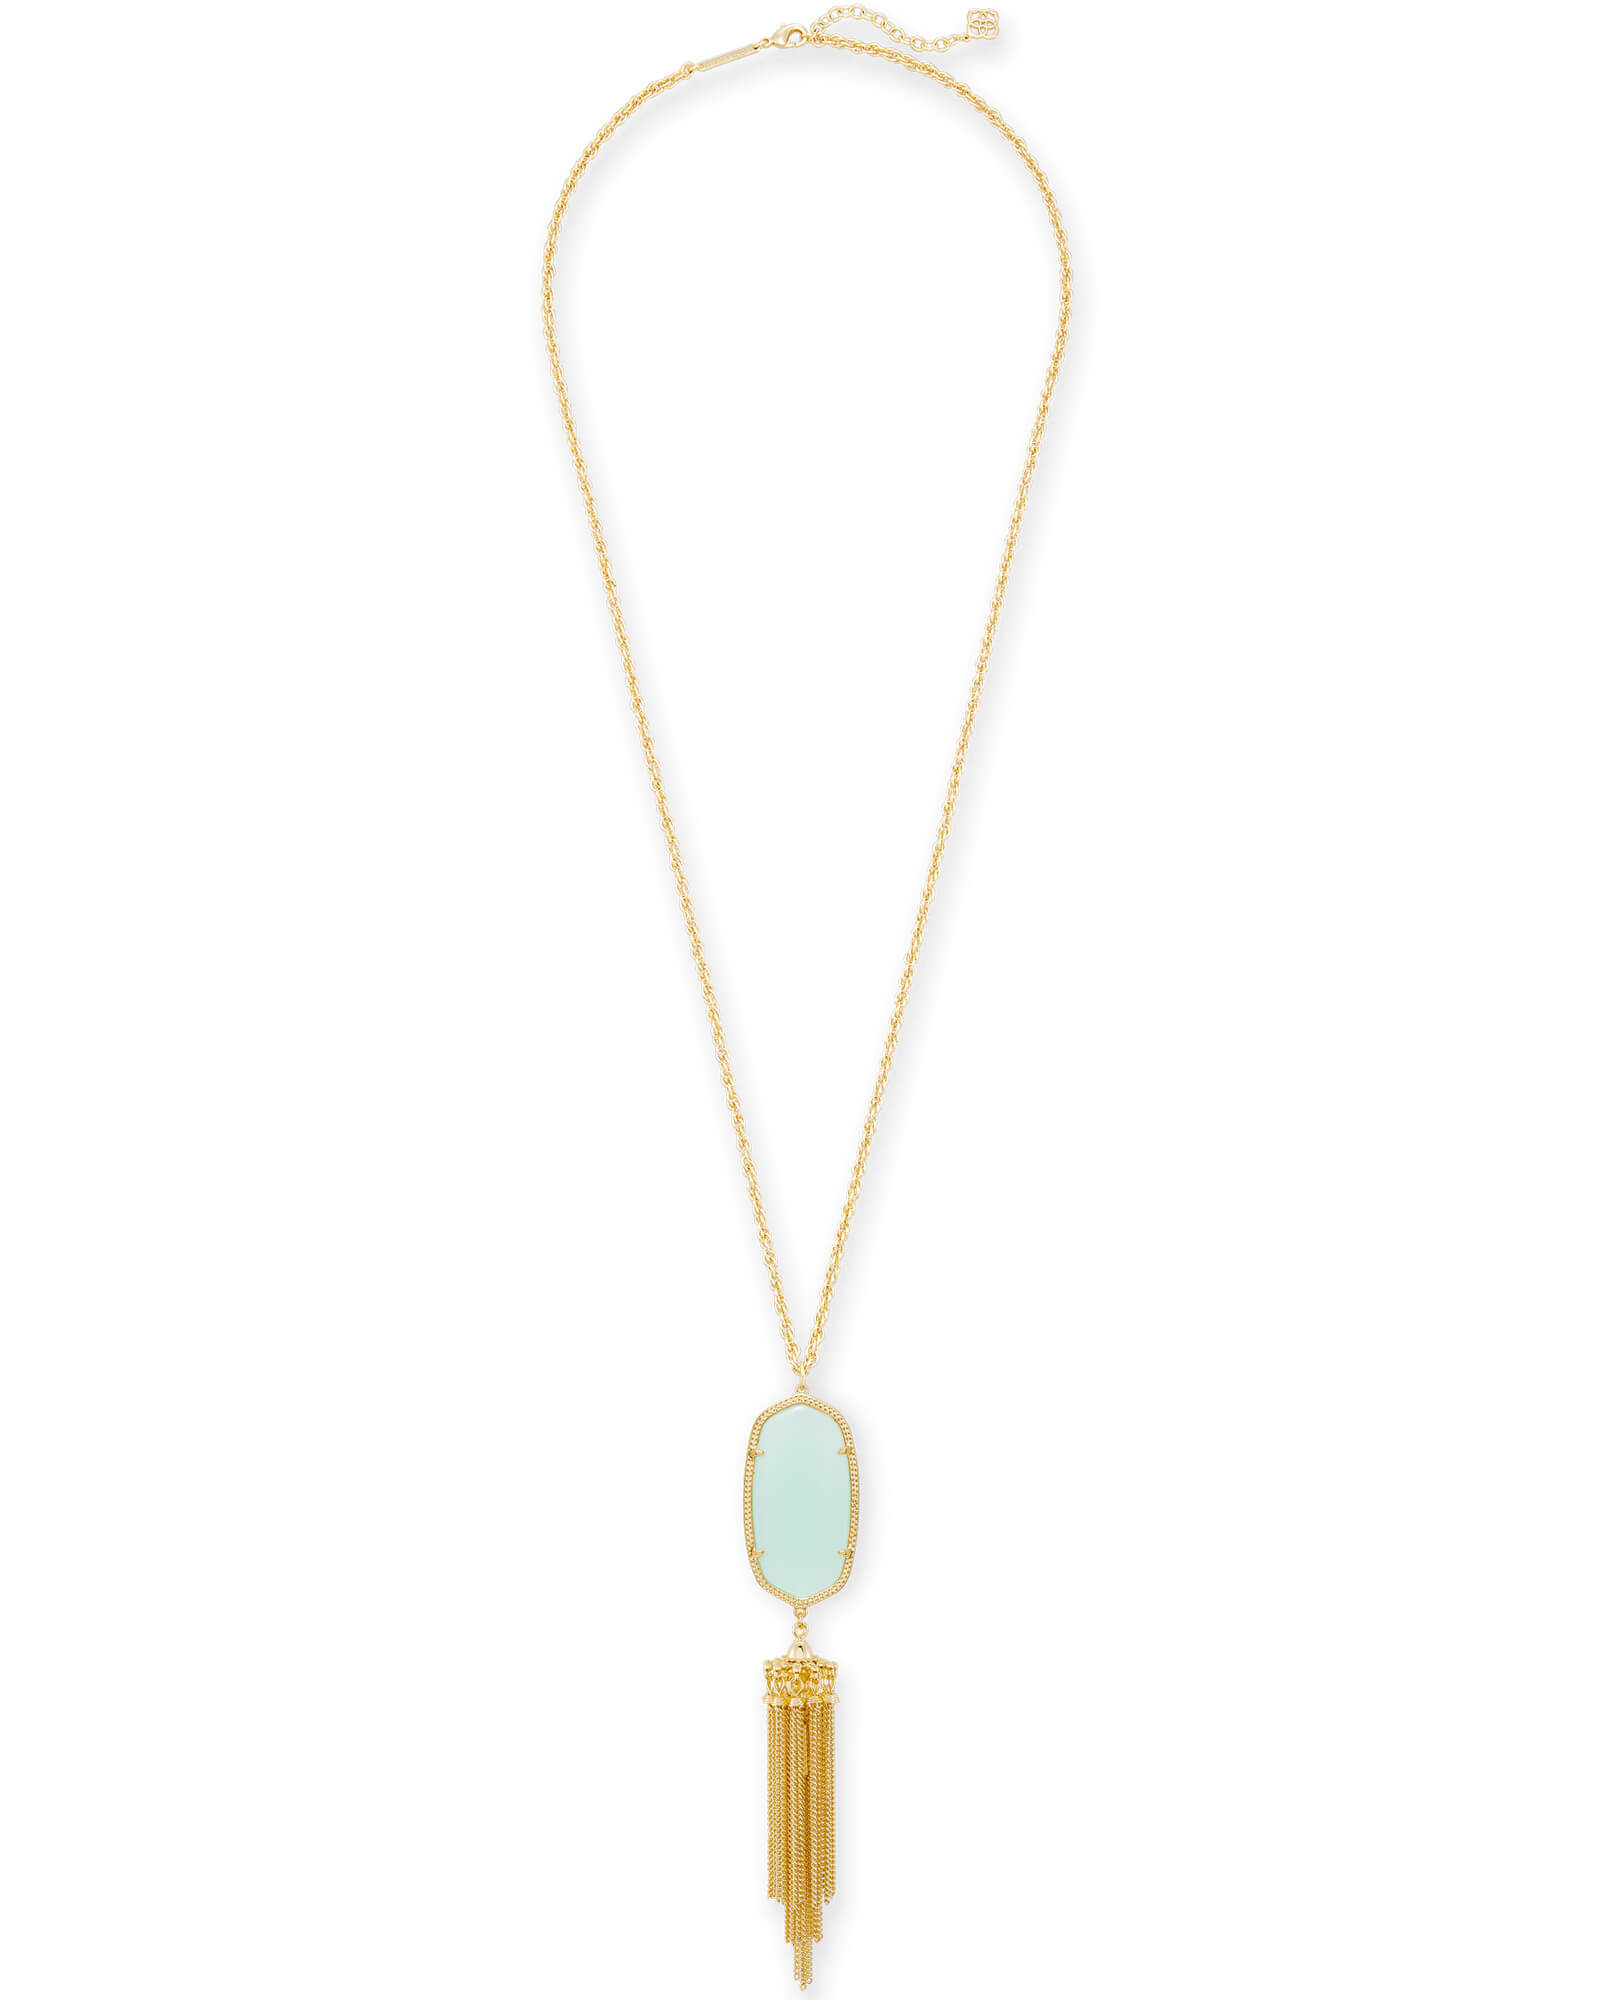 Rayne Long Pendant Necklace in Gold